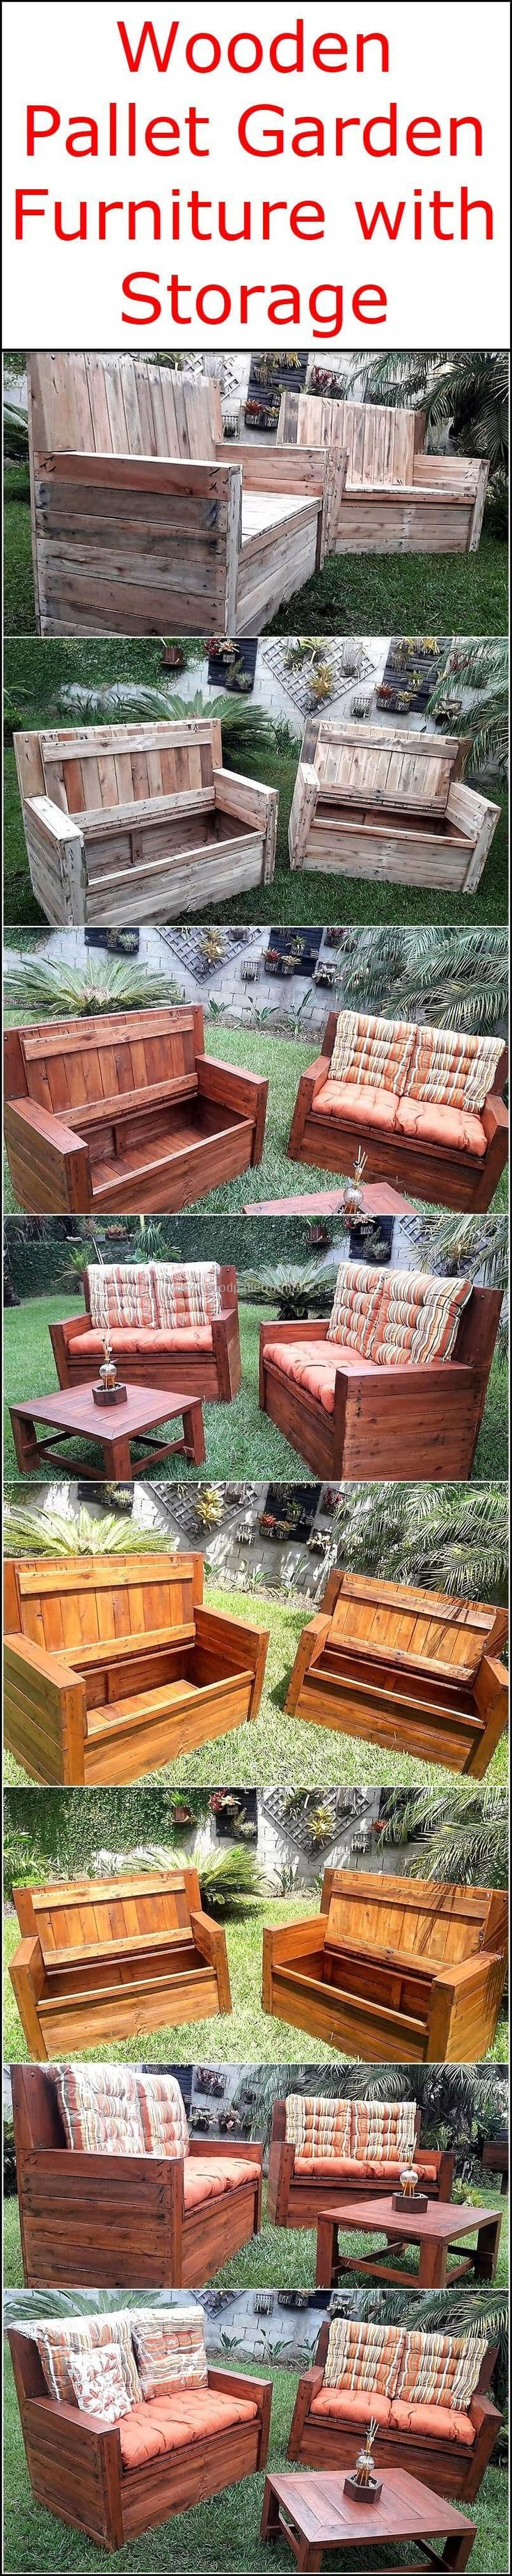 Here we are going to offer you an amazing garden furniture made of the recycled wooden pallet that is all set out for the ornamentation and for the refurbishing of your area. But you will get amazed with this garden set as it is also created with a large storage space in it. So grab this awesome plan right now.  #pallets #woodpallet #palletfurniture #palletproject #palletideas #recycle #recycledpallet #reclaimed #repurposed #reused #restore #upcycle #diy #palletart #pallet #recycling…